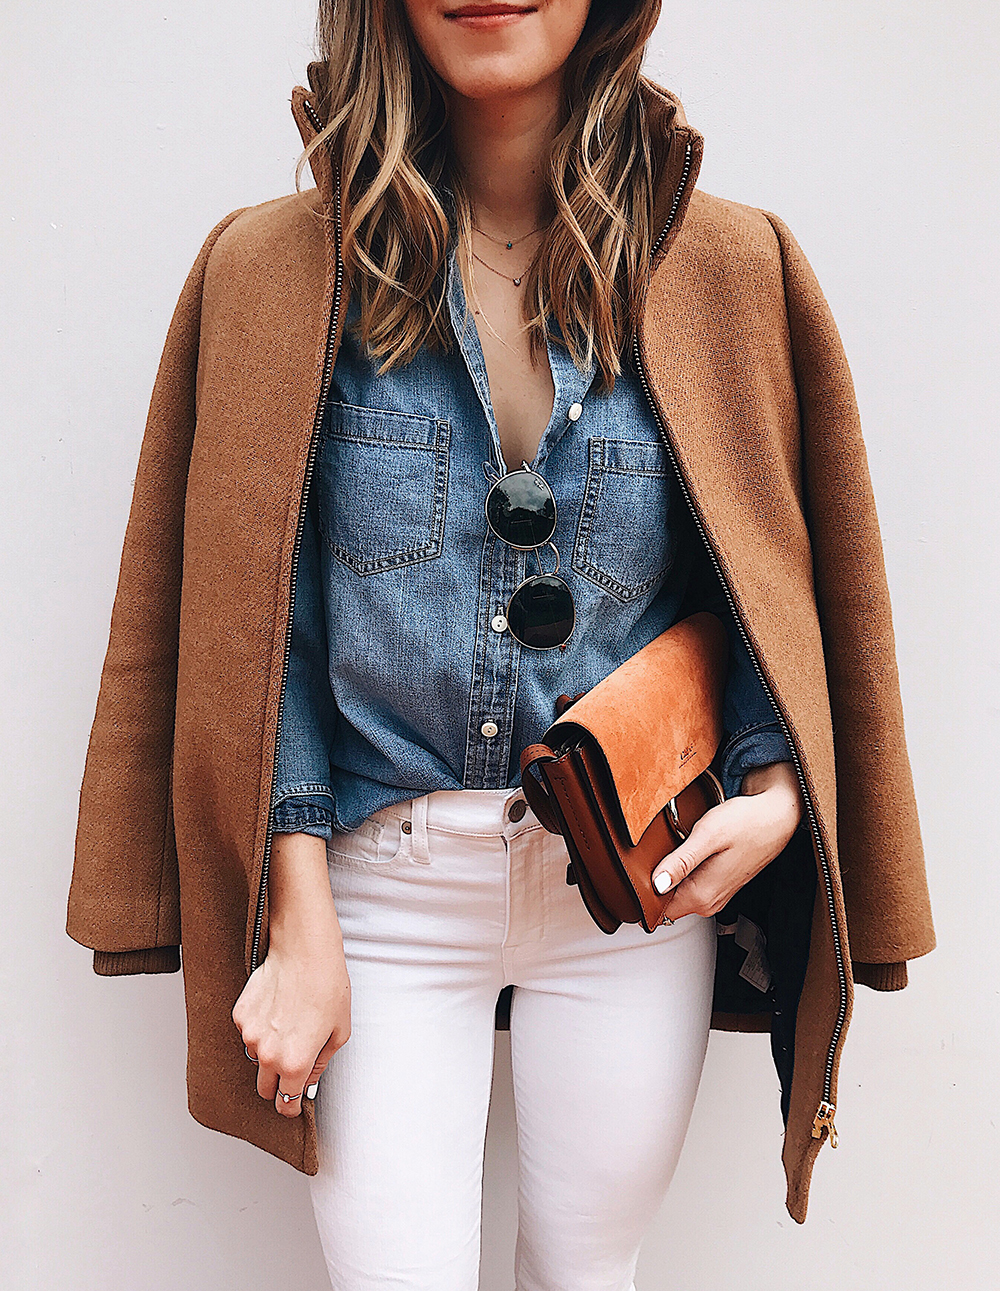 livvyland-blog-olivia-watson-j-crew-camel-coat-chambray-shirt-white-denim-jeans-outfit